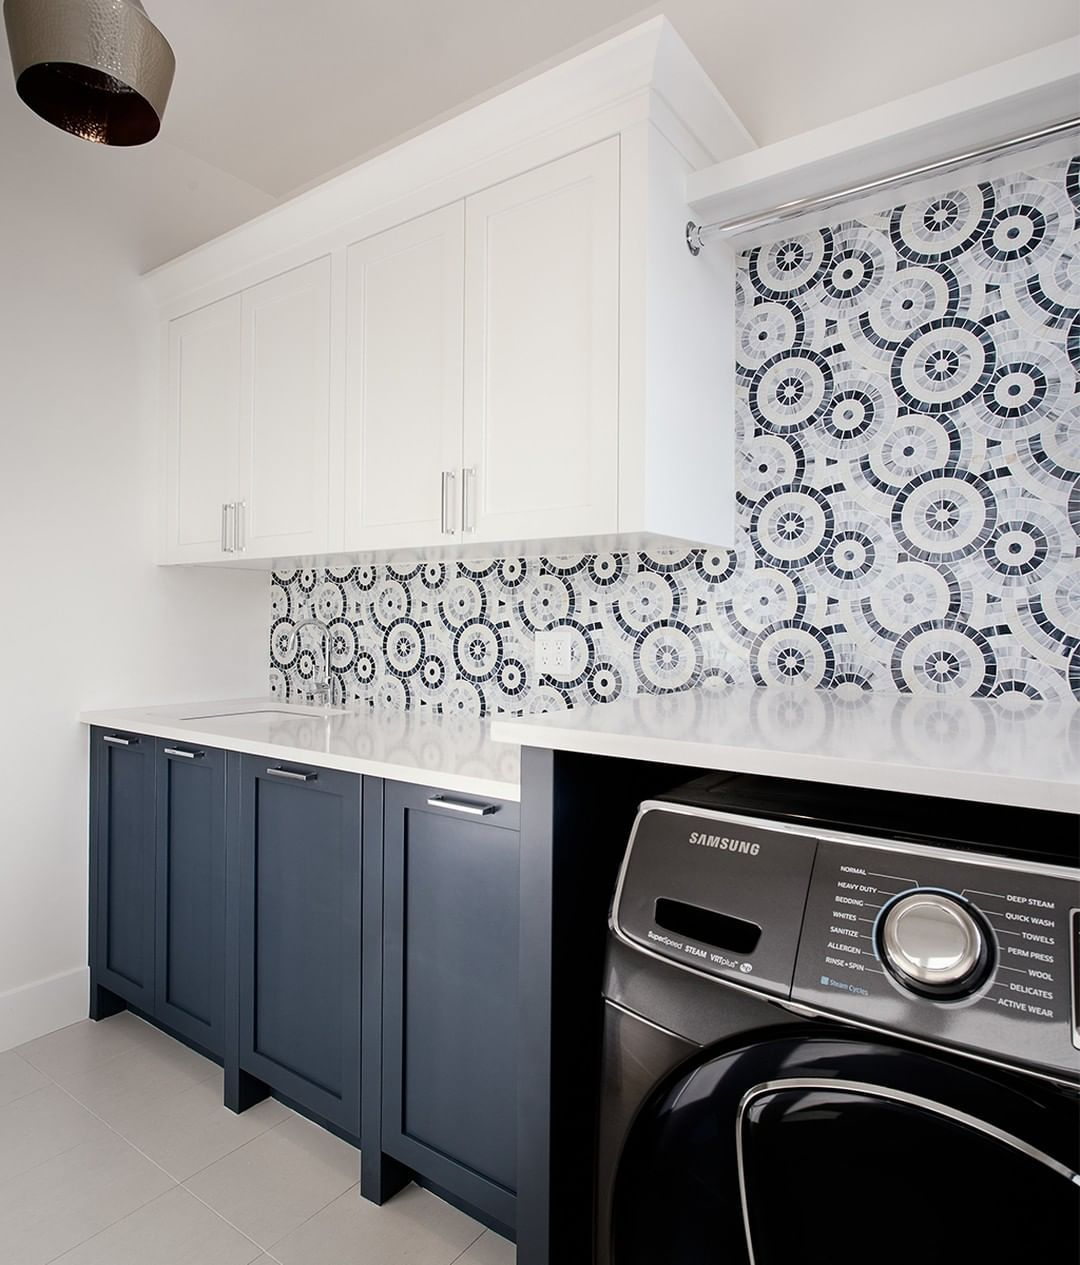 This Design From Verandainterior Has Our Heads Spinning In The